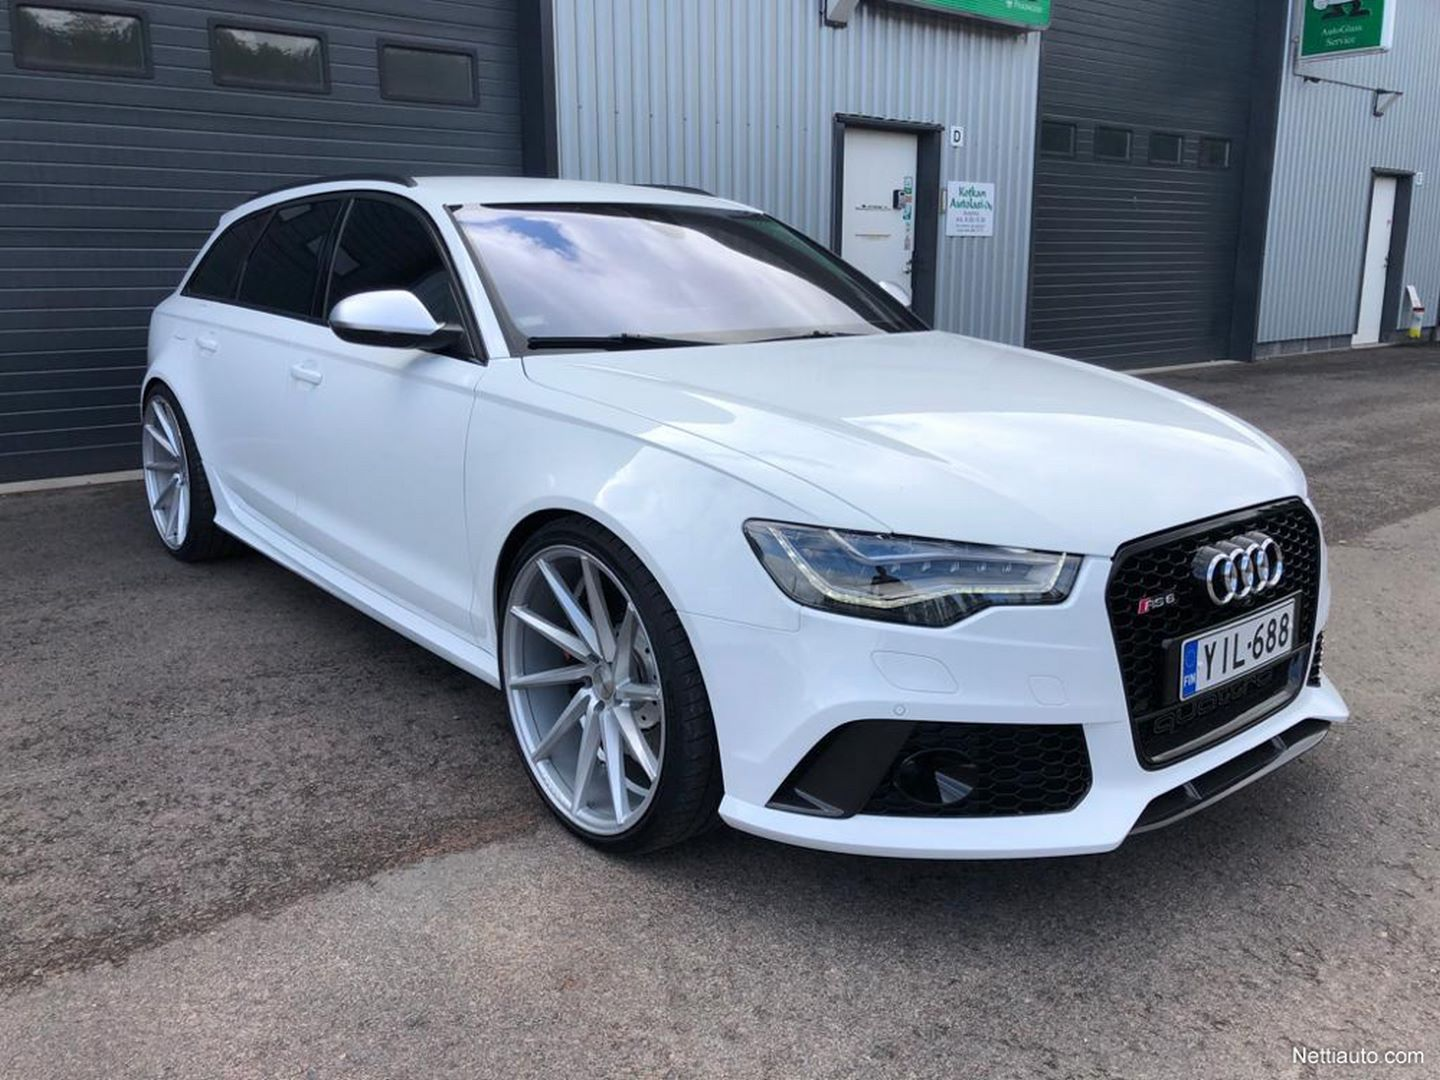 Audi-RS6-Avant-Kimi-Raikkonen-for-sale-4